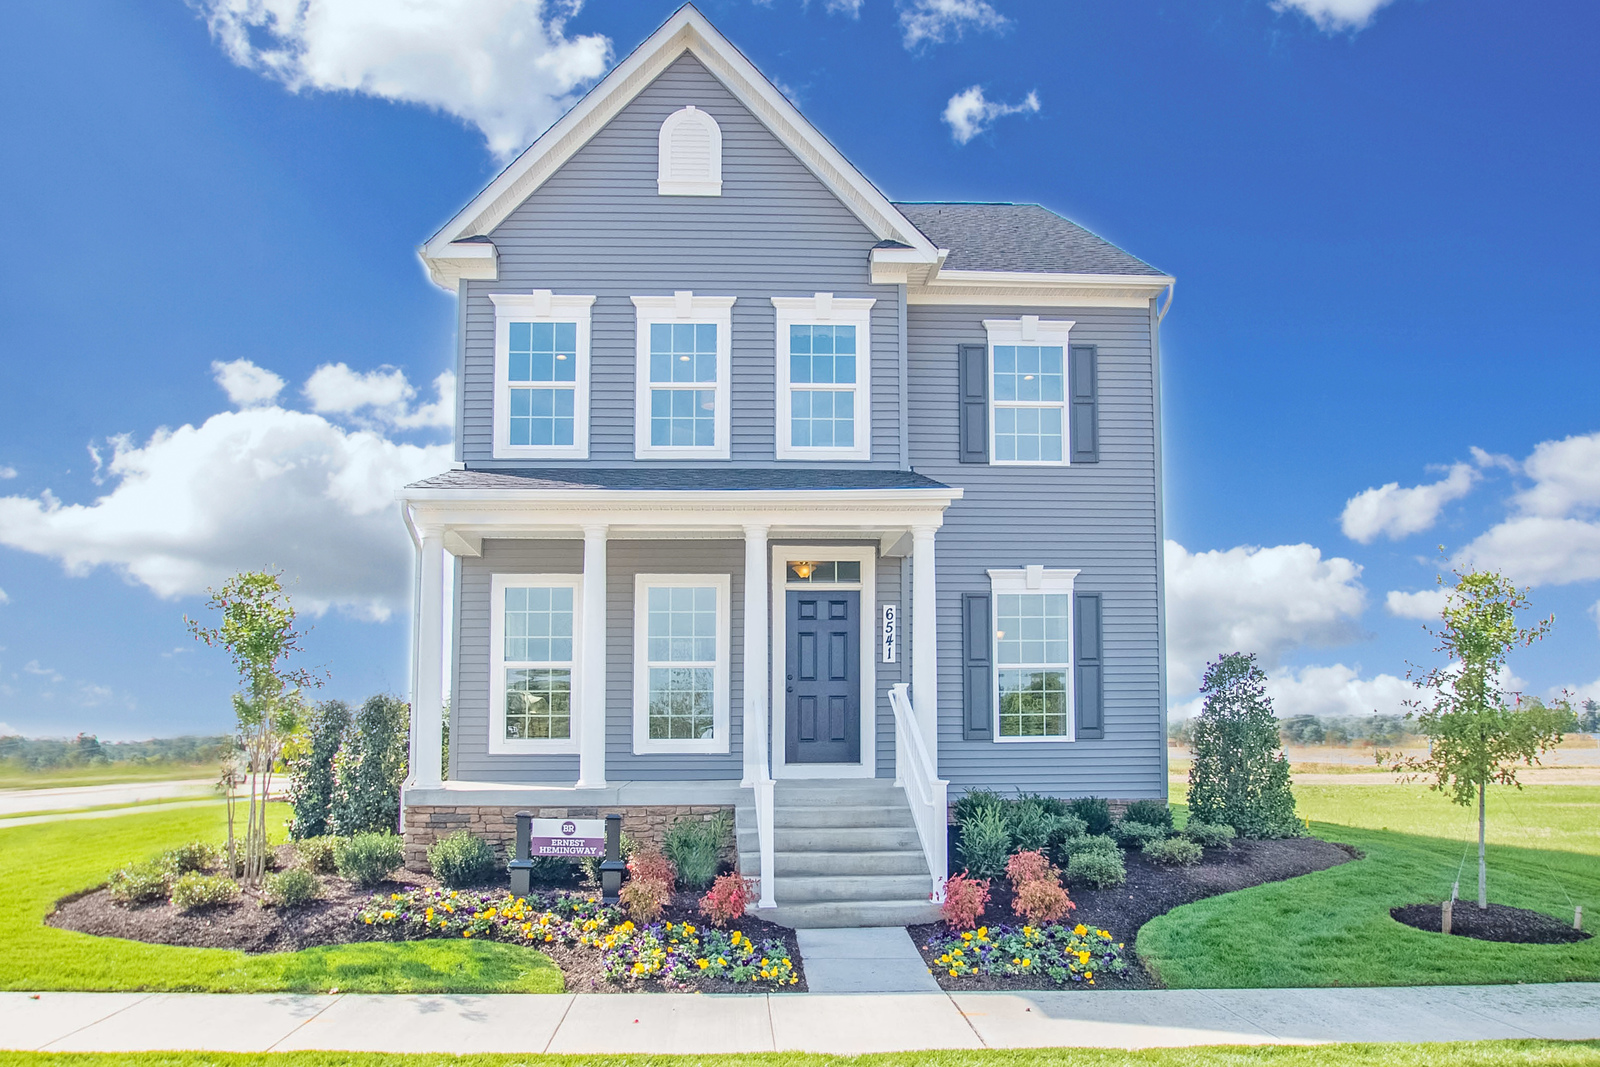 New Homes For Sale At Ballenger Run Single Family Homes In Frederick